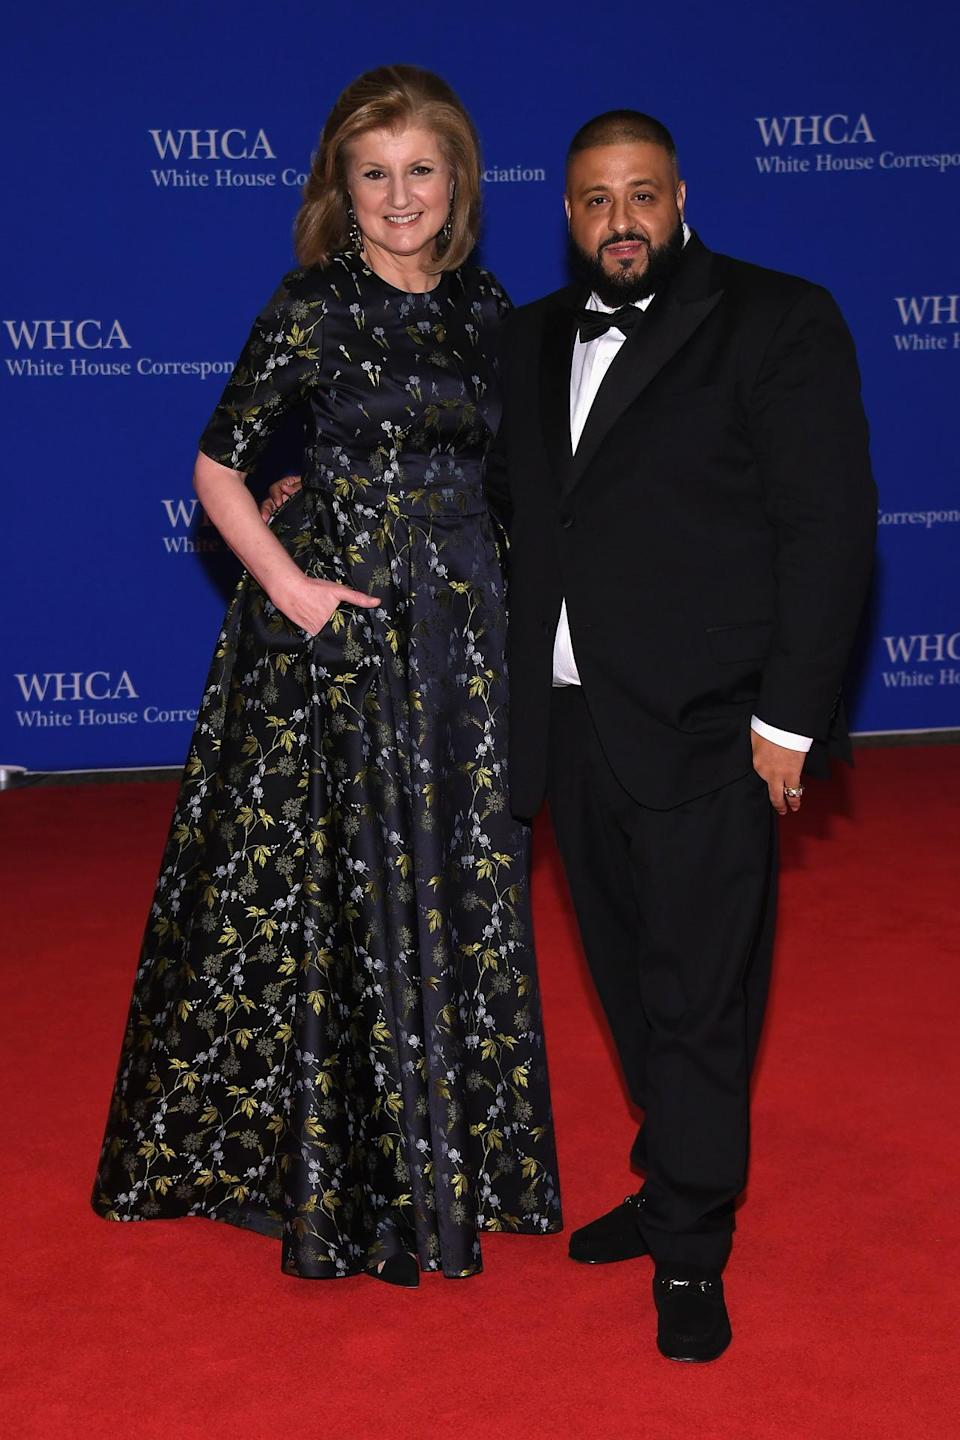 <p>Arianna Huffington and DJ Khaled attend the 102nd White House Correspondents' Dinner, April 30. <i>(Photo: Larry Busacca/Getty Images)</i></p>